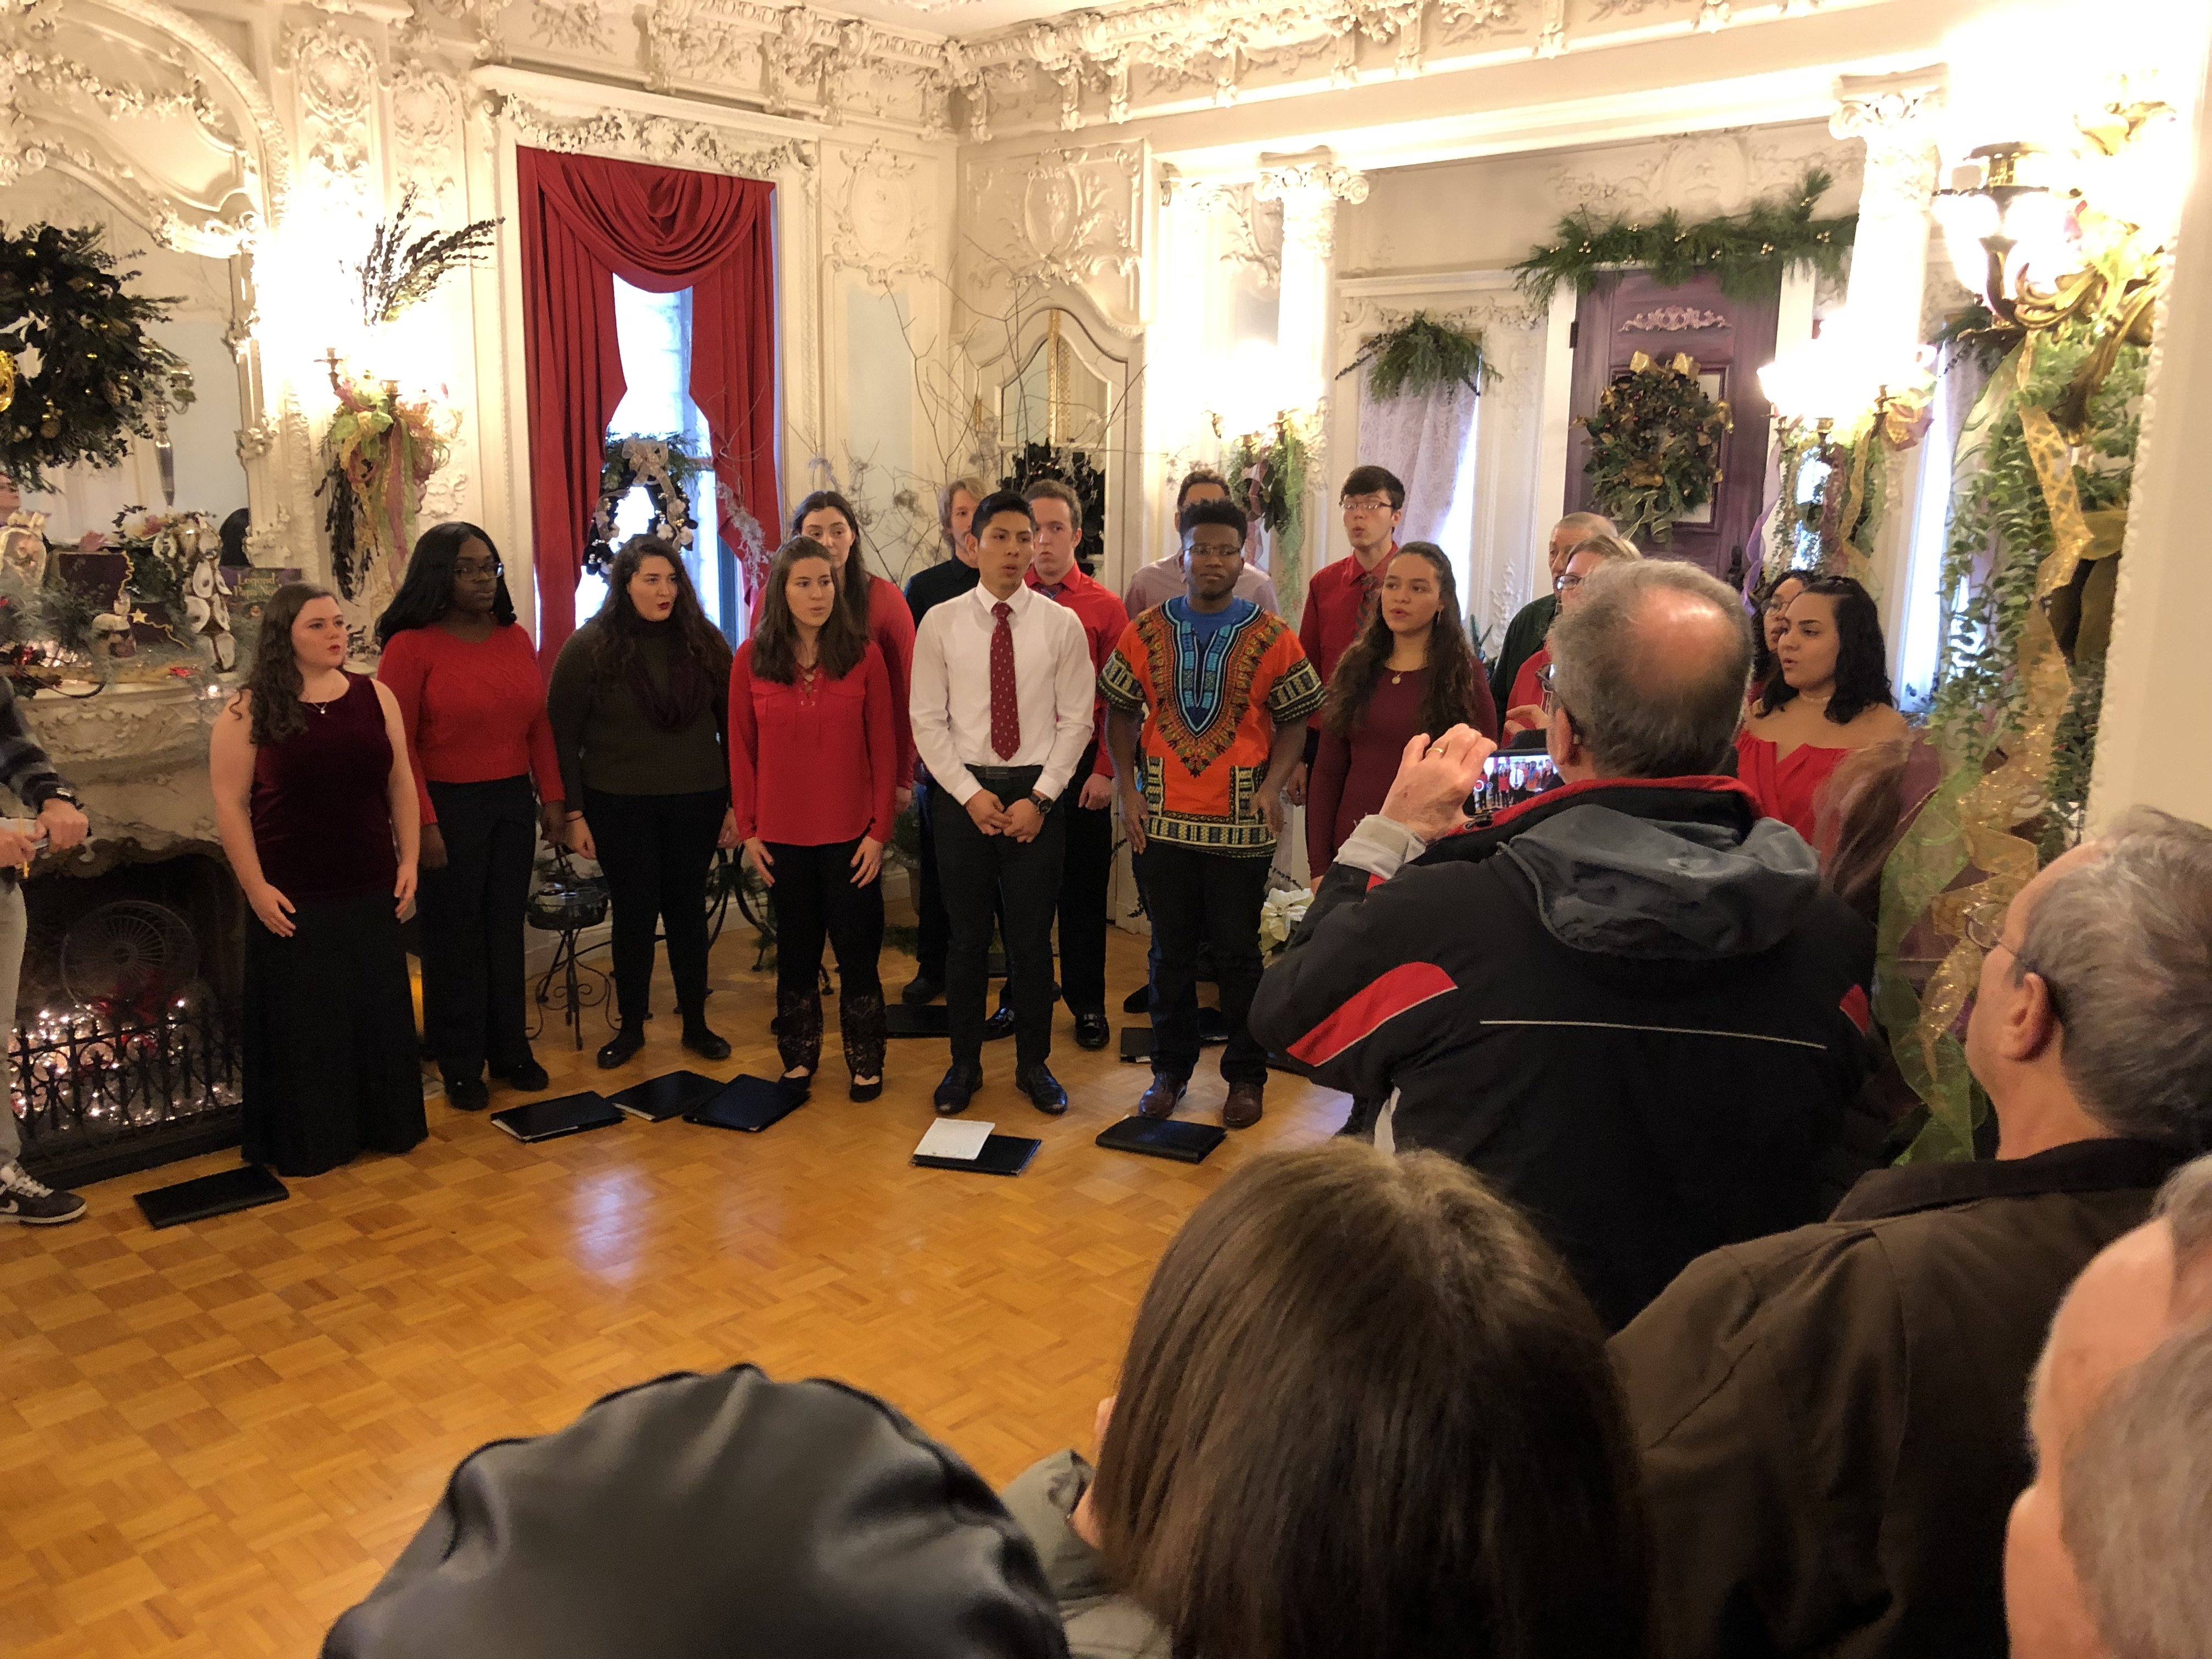 PHOTO: The Madrigal Singers at the Holiday Open House